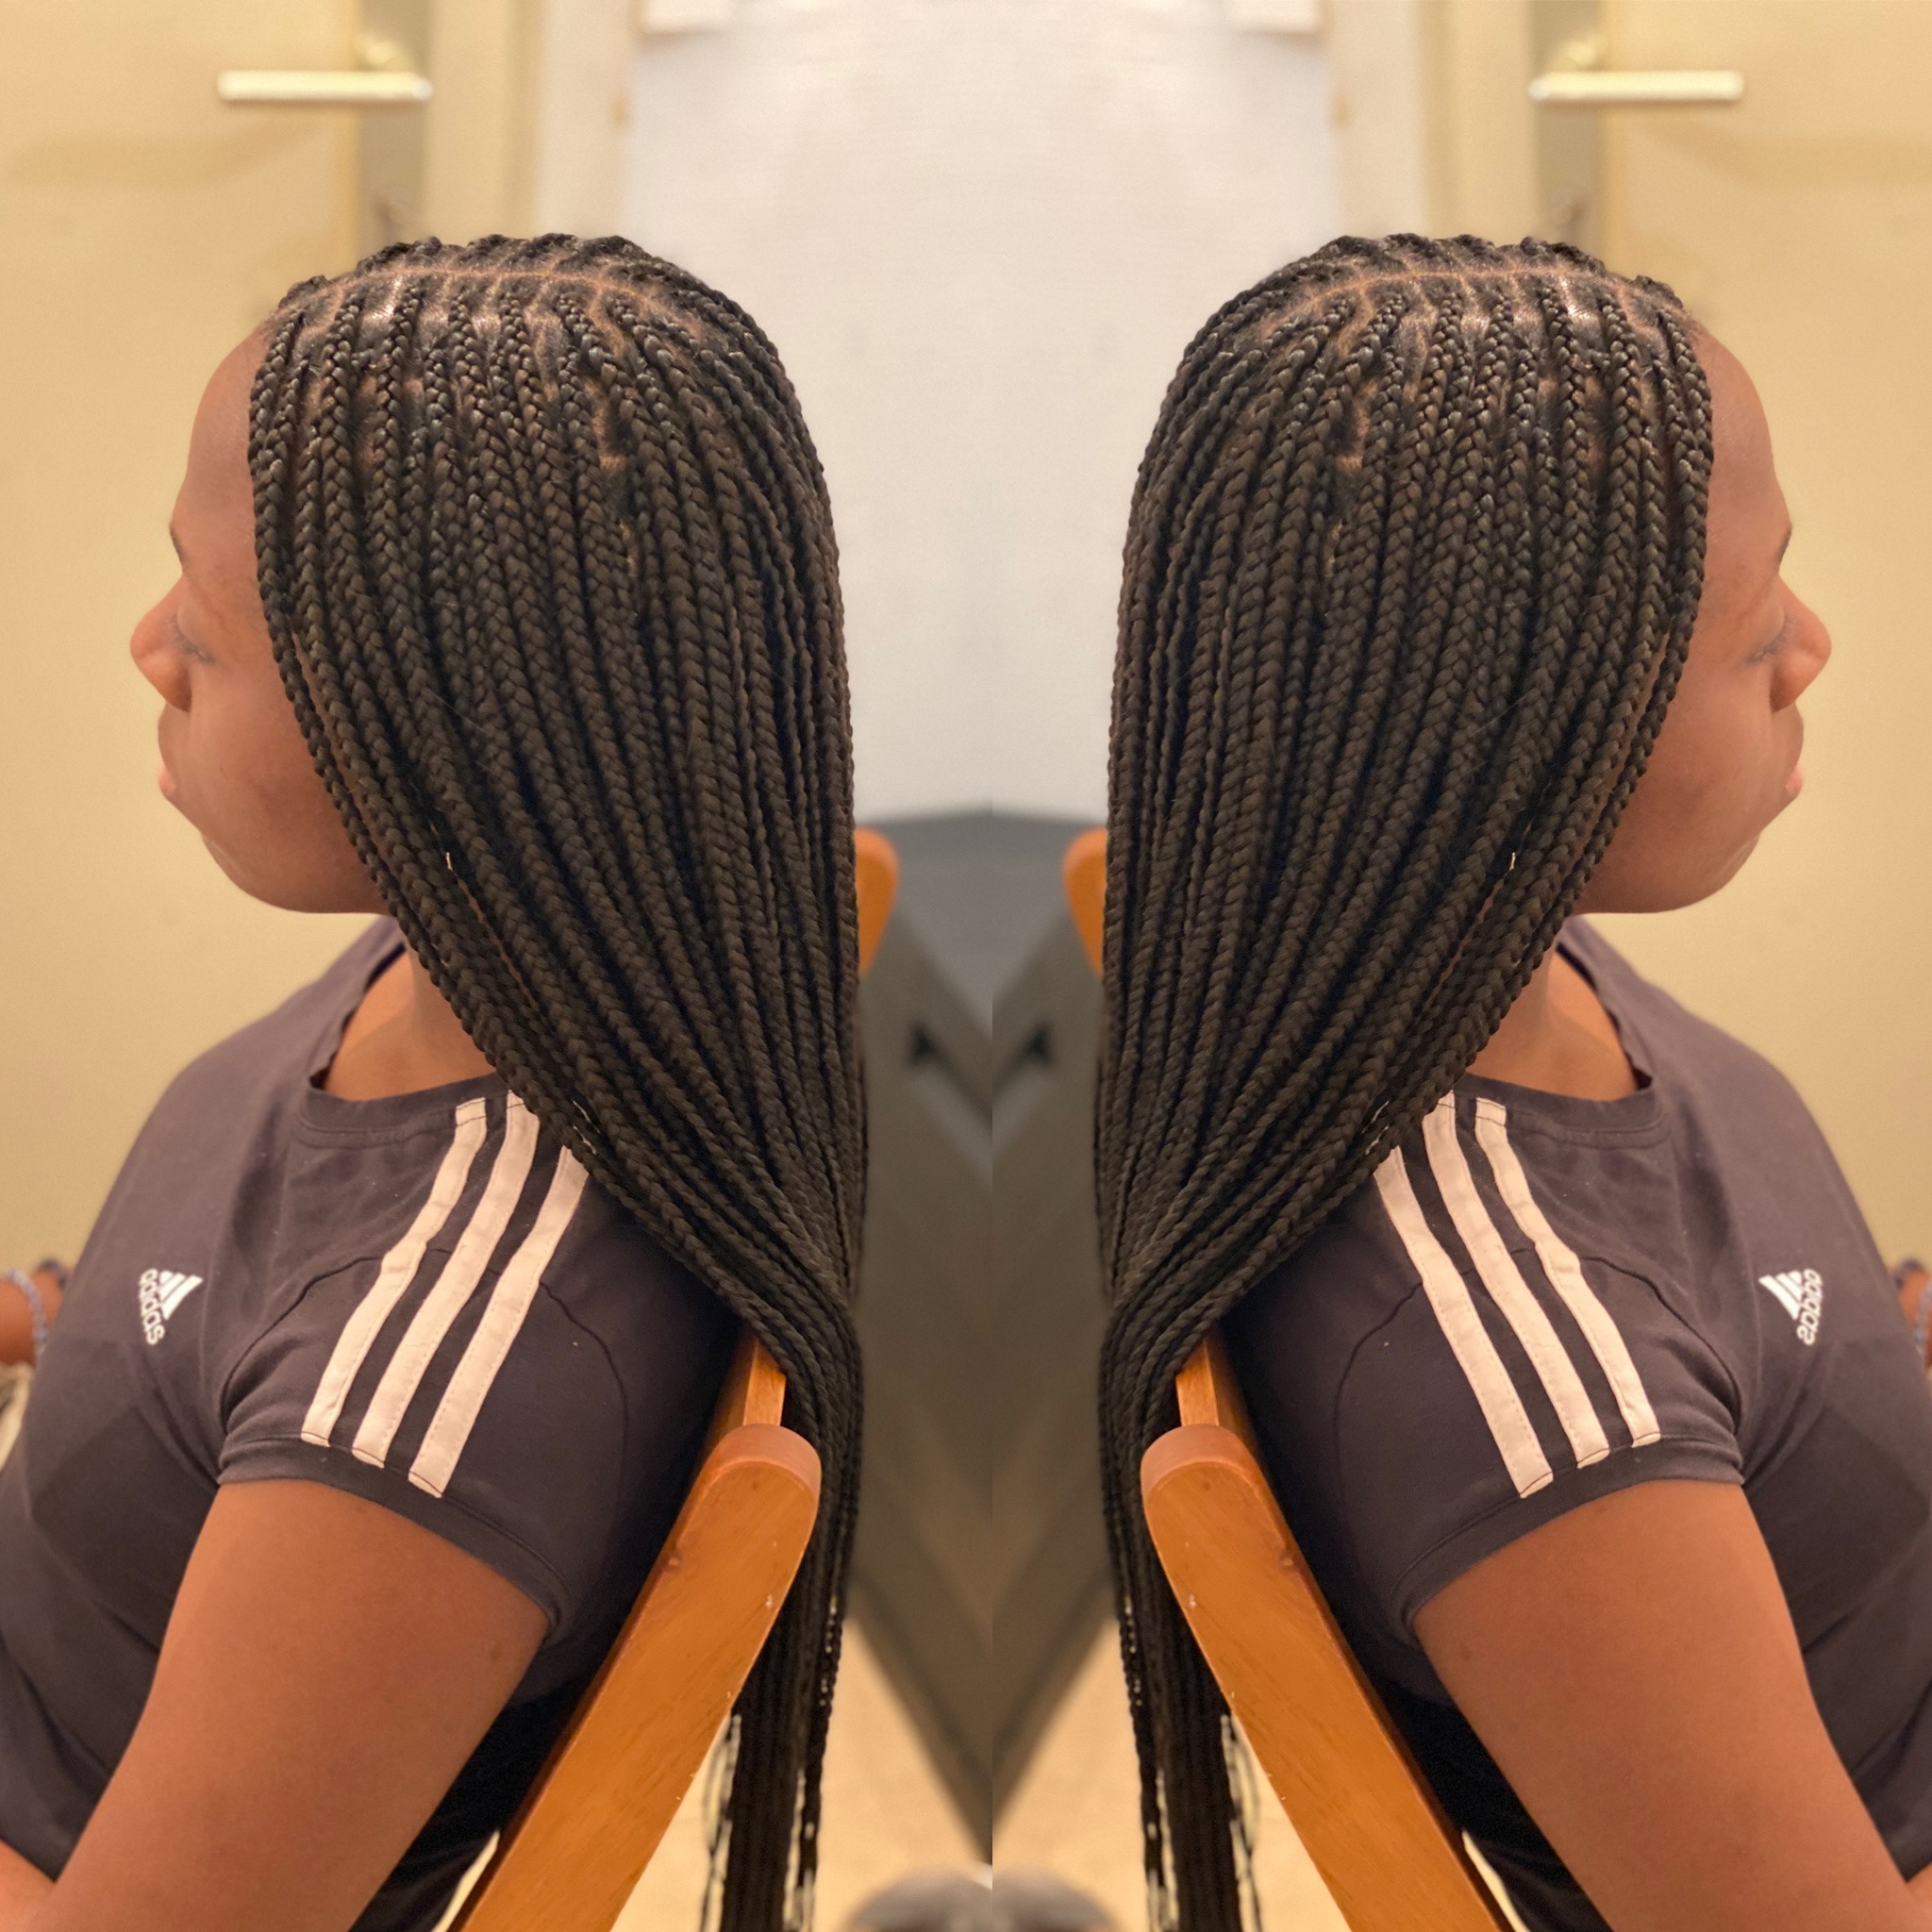 salon de coiffure afro tresse tresses box braids crochet braids vanilles tissages paris 75 77 78 91 92 93 94 95 SJCUEIWX